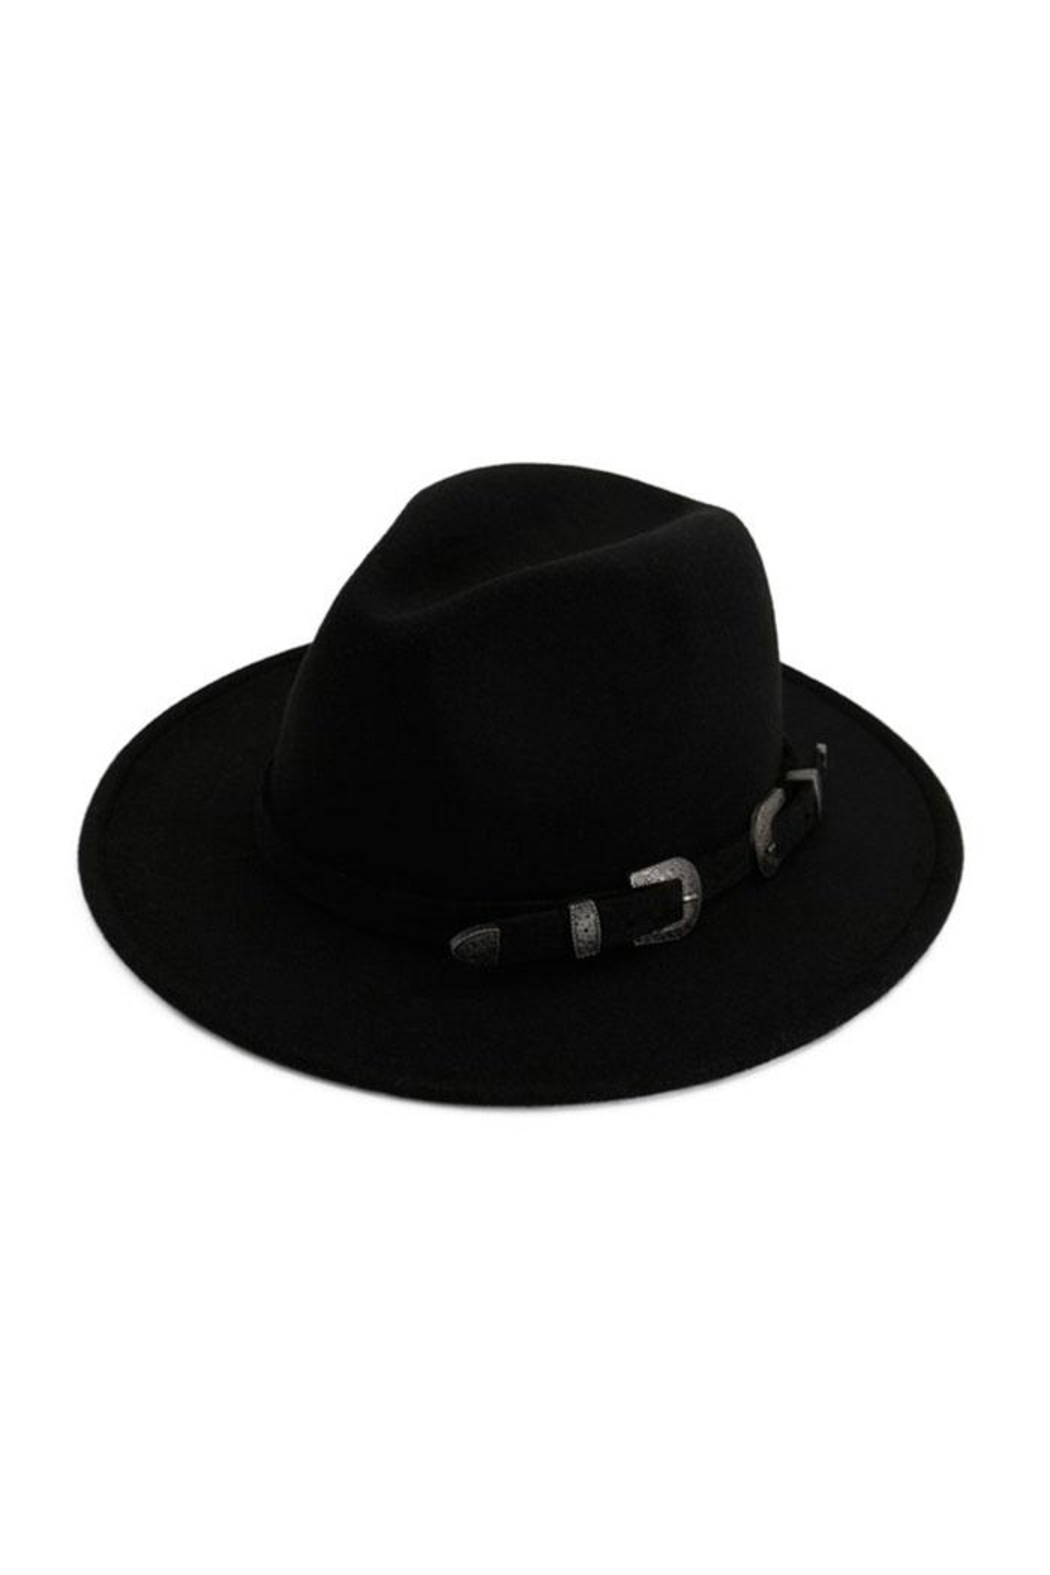 Nadya's Closet Two Buckle Black Belt Casual Panama Hat - Front Cropped Image